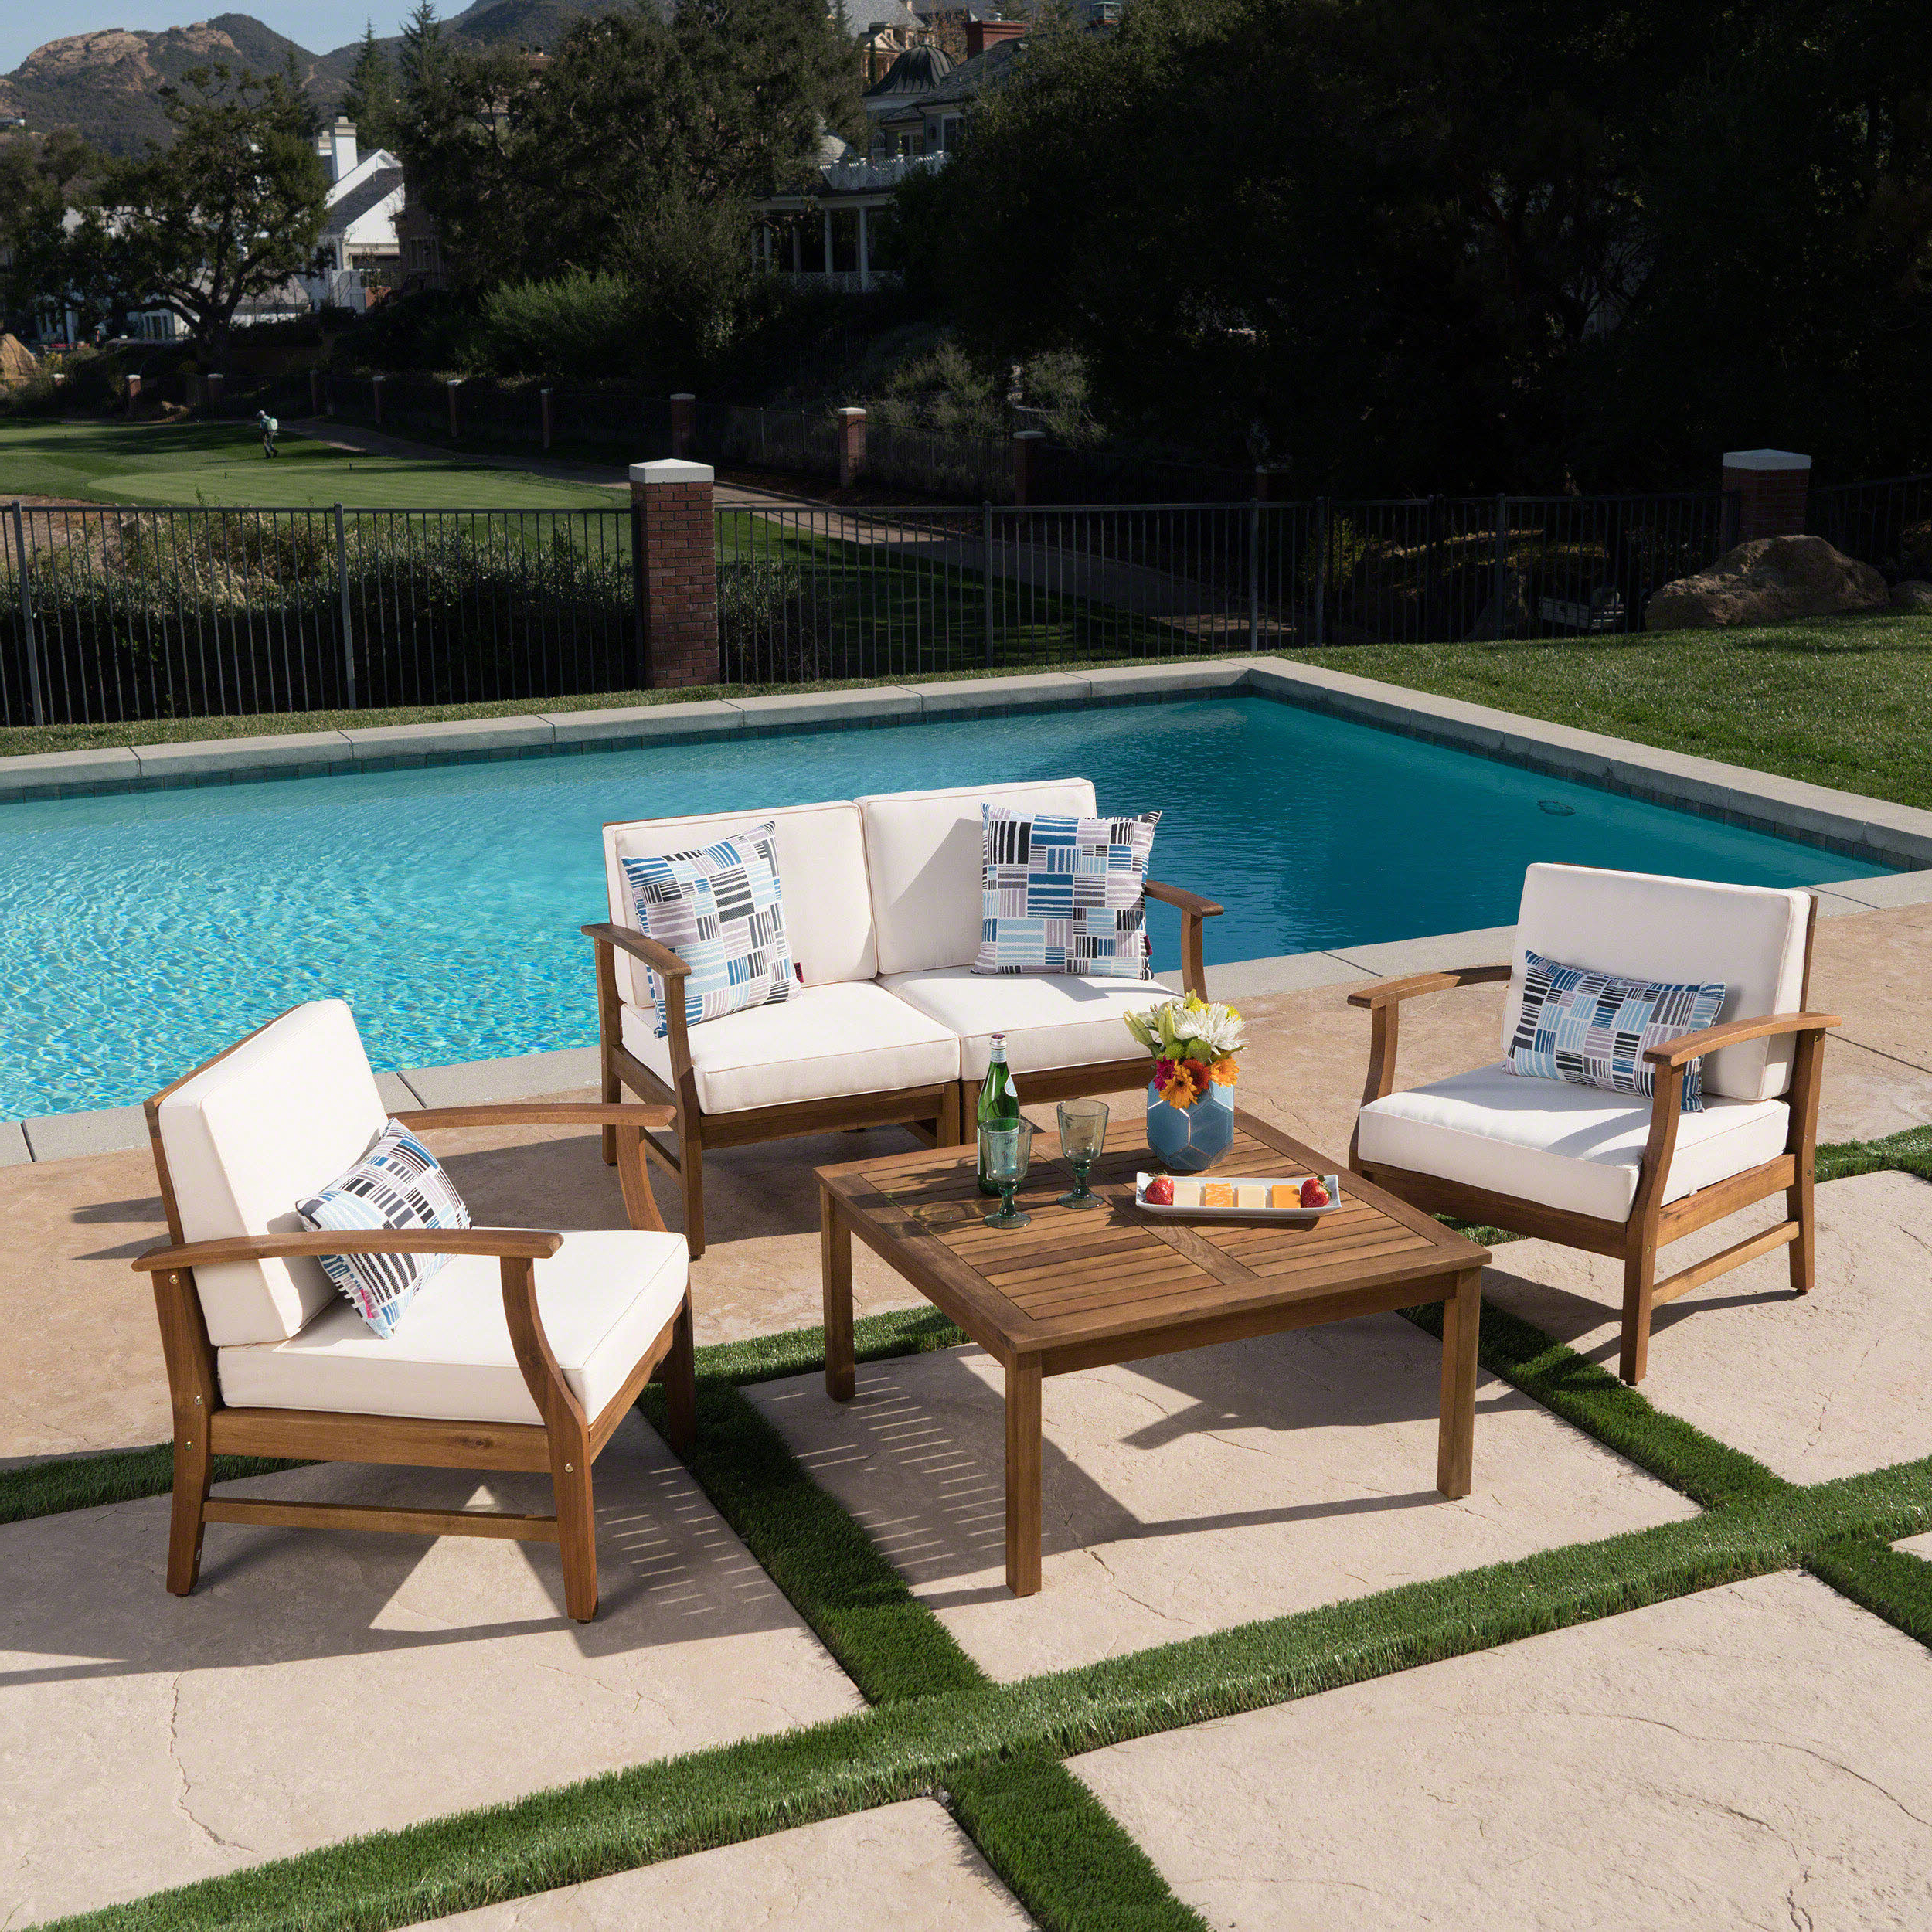 Trendy Antonia Teak Patio Sectionals With Cushions Pertaining To Antonia 4 Piece Sofa Set With Cushions (View 16 of 25)